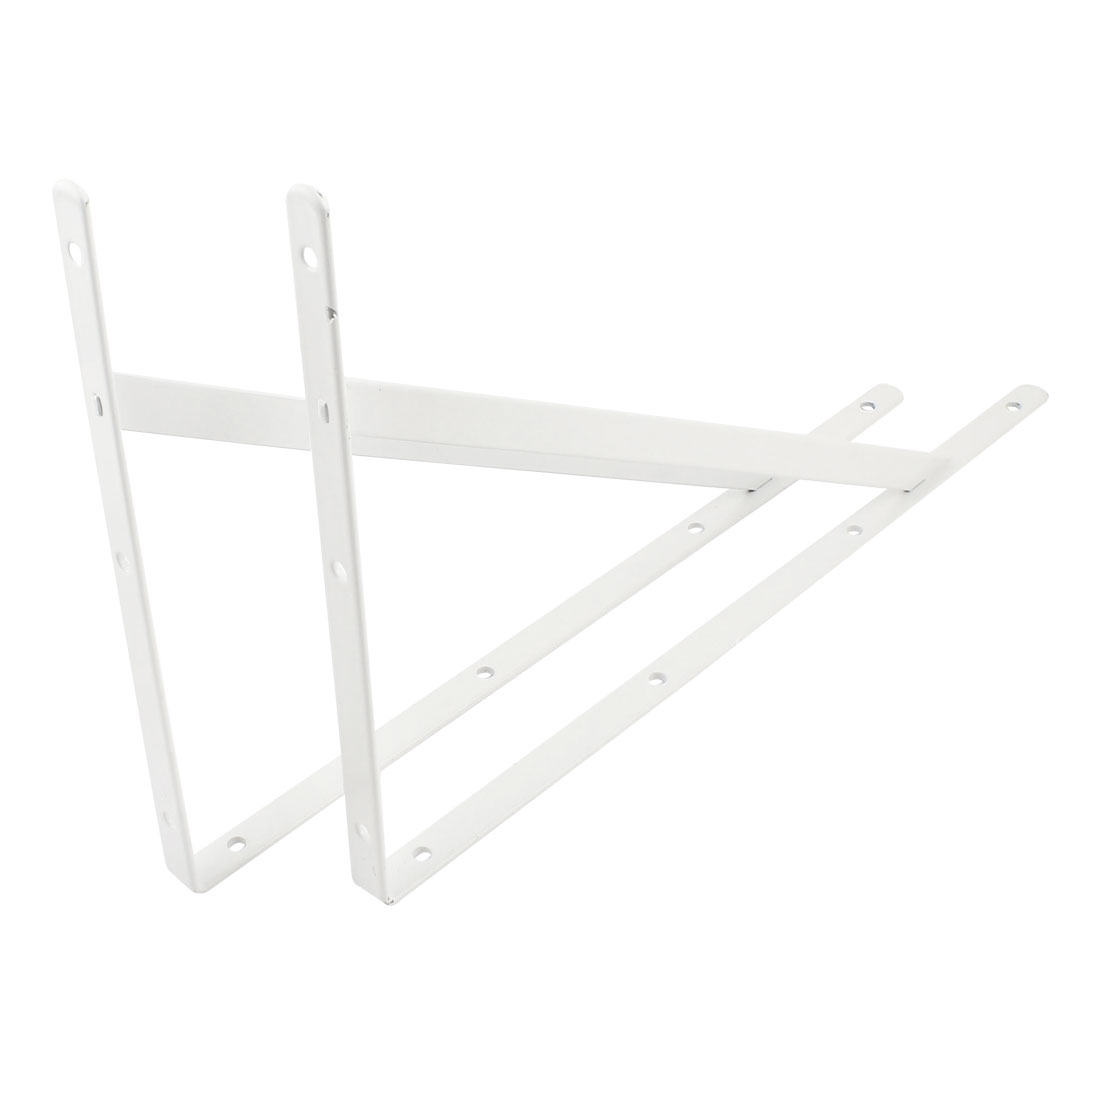 400mmx250mm White L Shaped Book Goods Holder Shelf Bracket Support 2 Pcs